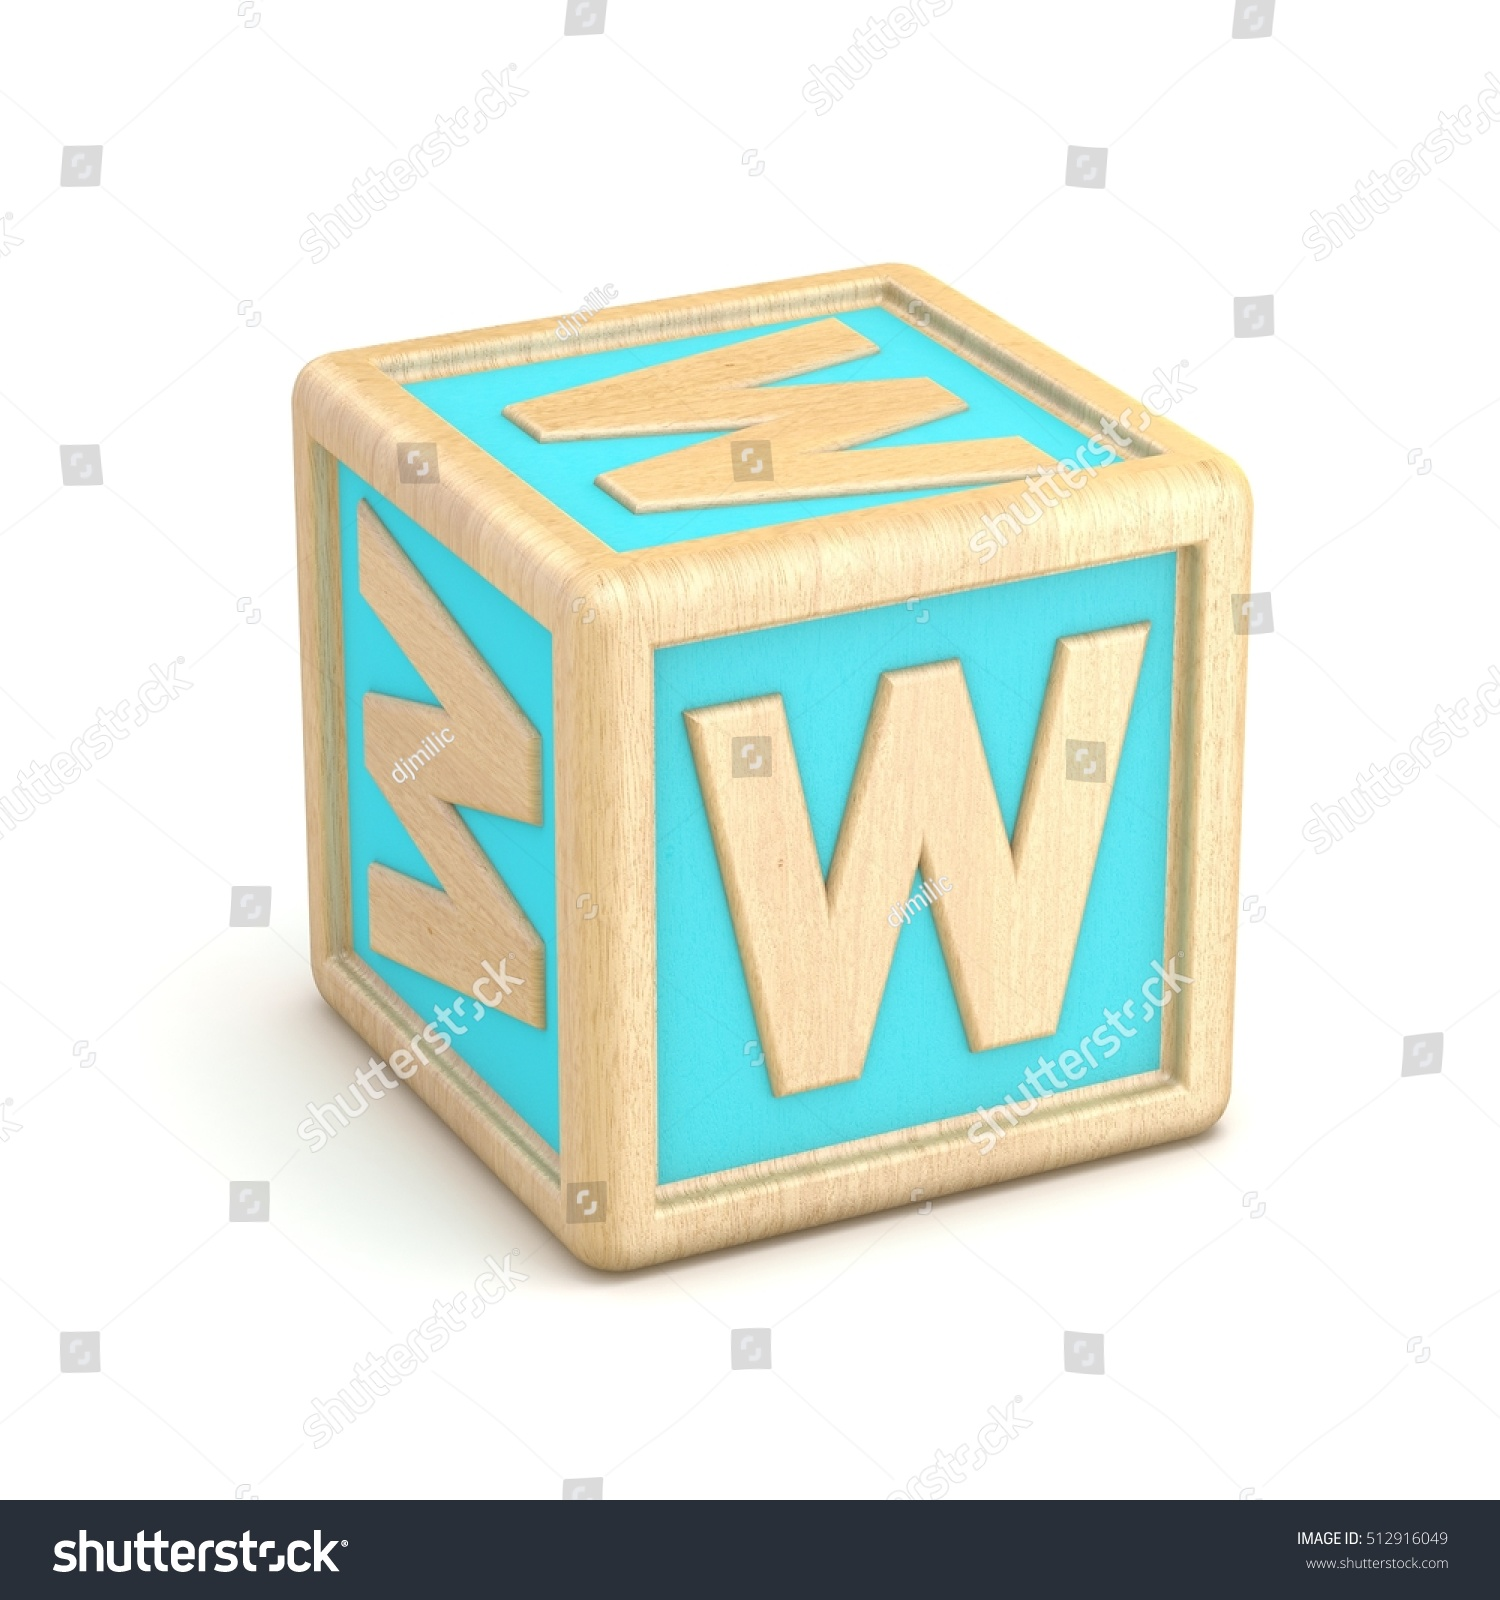 letter w wooden alphabet blocks font rotated 3d render illustration isolated on white background